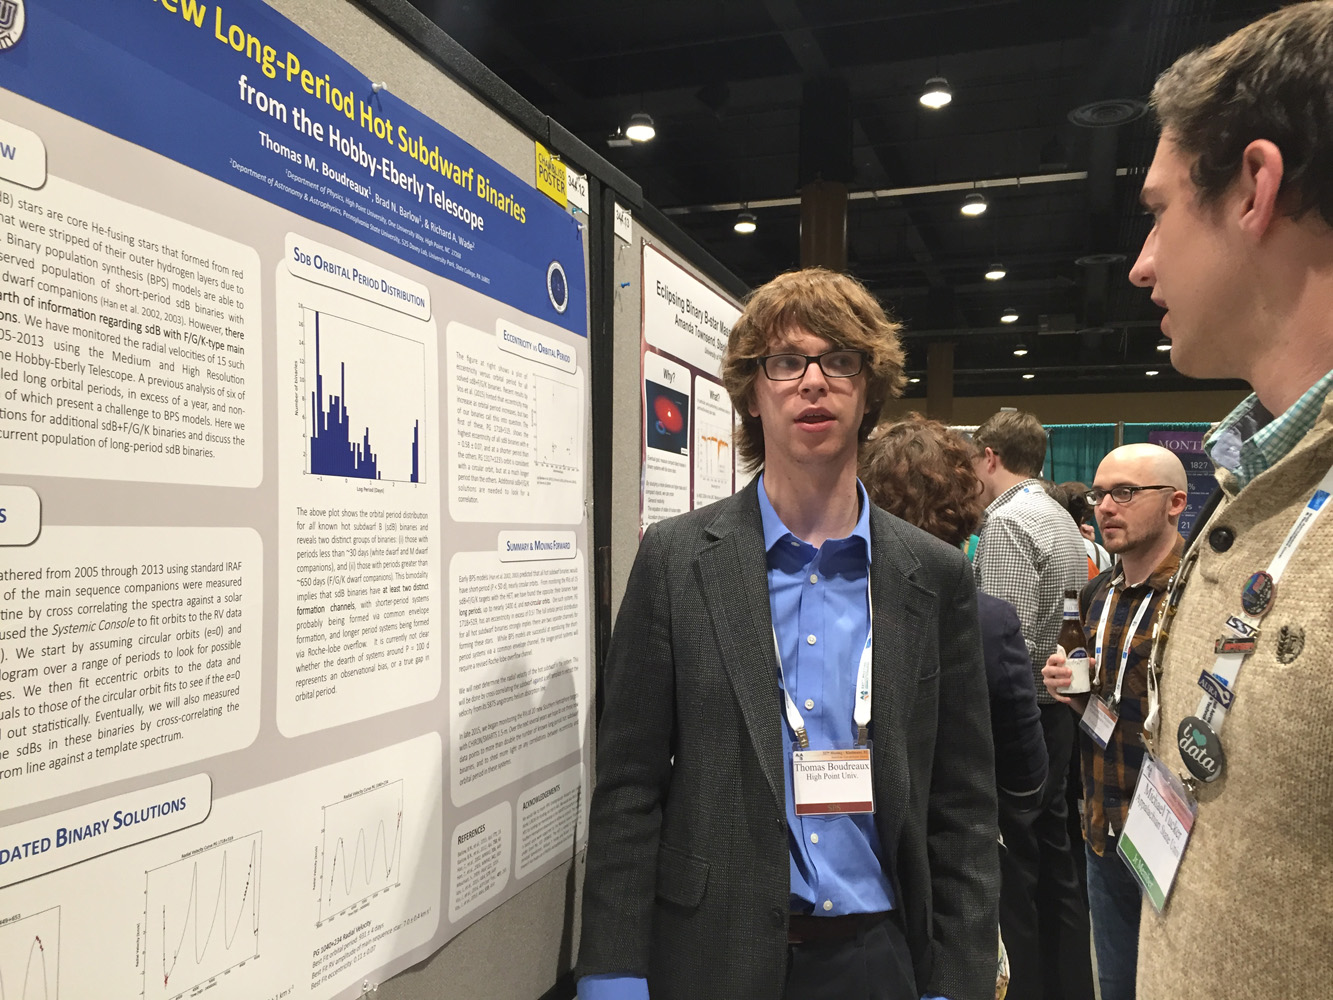 Thomas Boudreaux, left, shares his research with Michael Tucker, an astronomy undergraduate student from Appalachian State University.